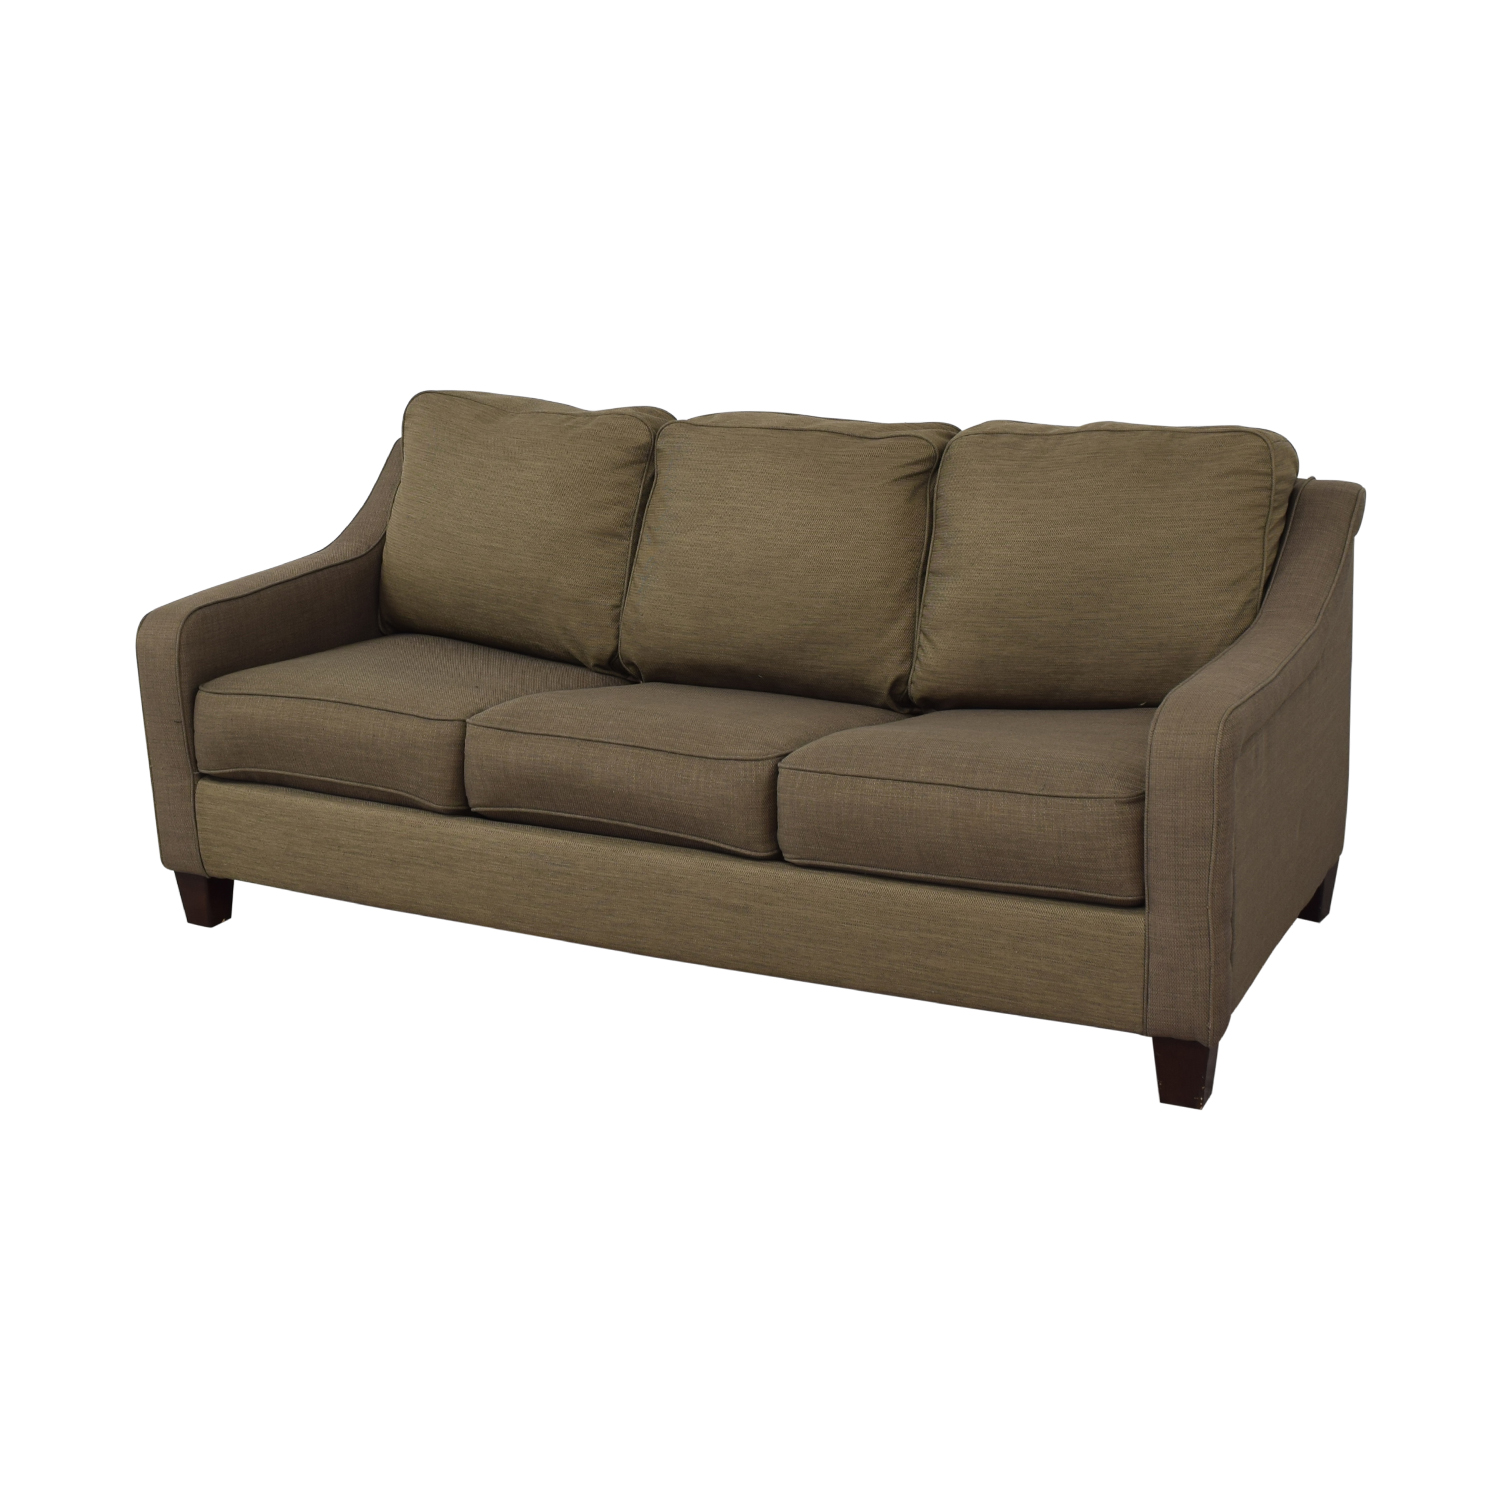 Jennifer Furniture Convertible Sofa